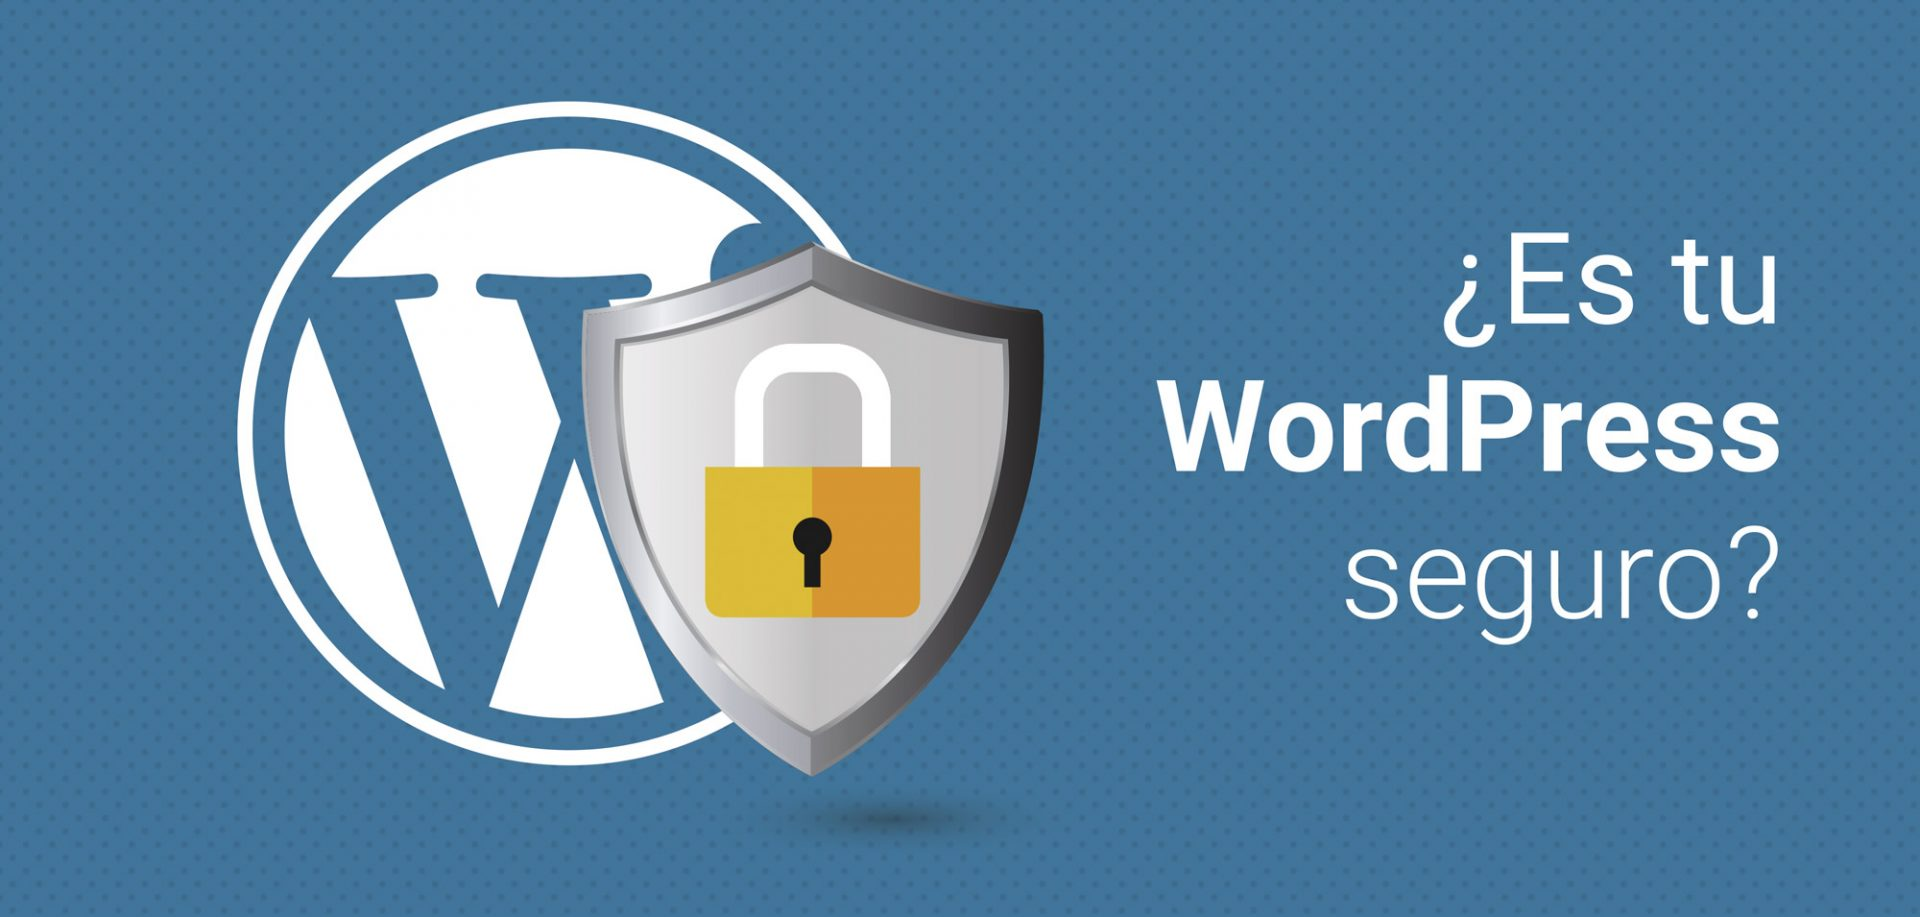 Aumentar la seguridad de Wordpress